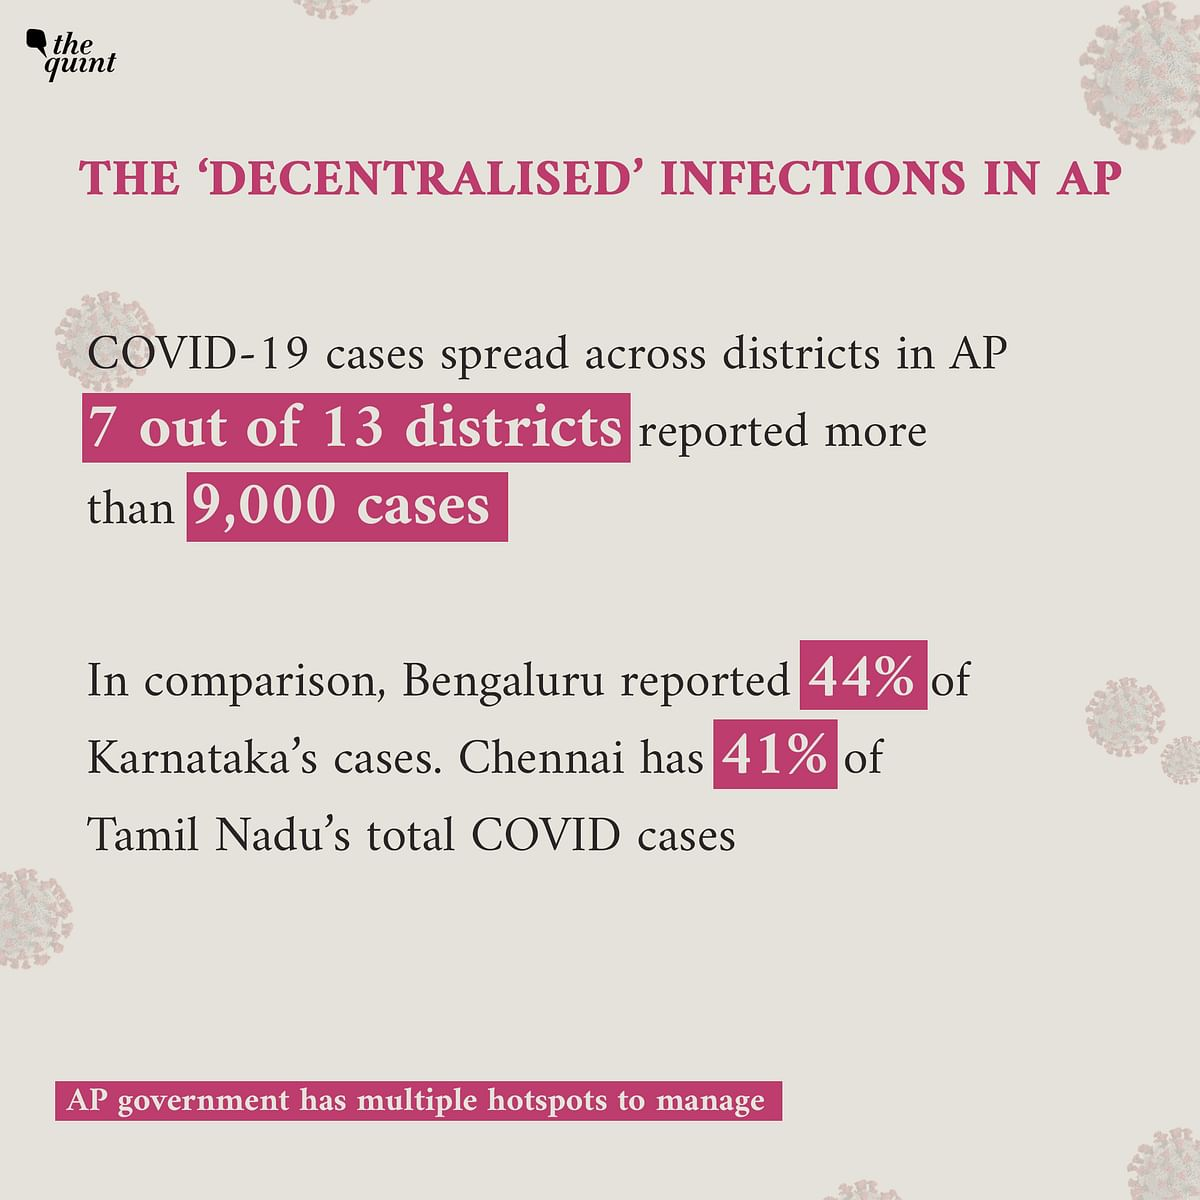 60,000 Cases In 7 Days! Decoding Andhra Pradesh's COVID-19 Spike